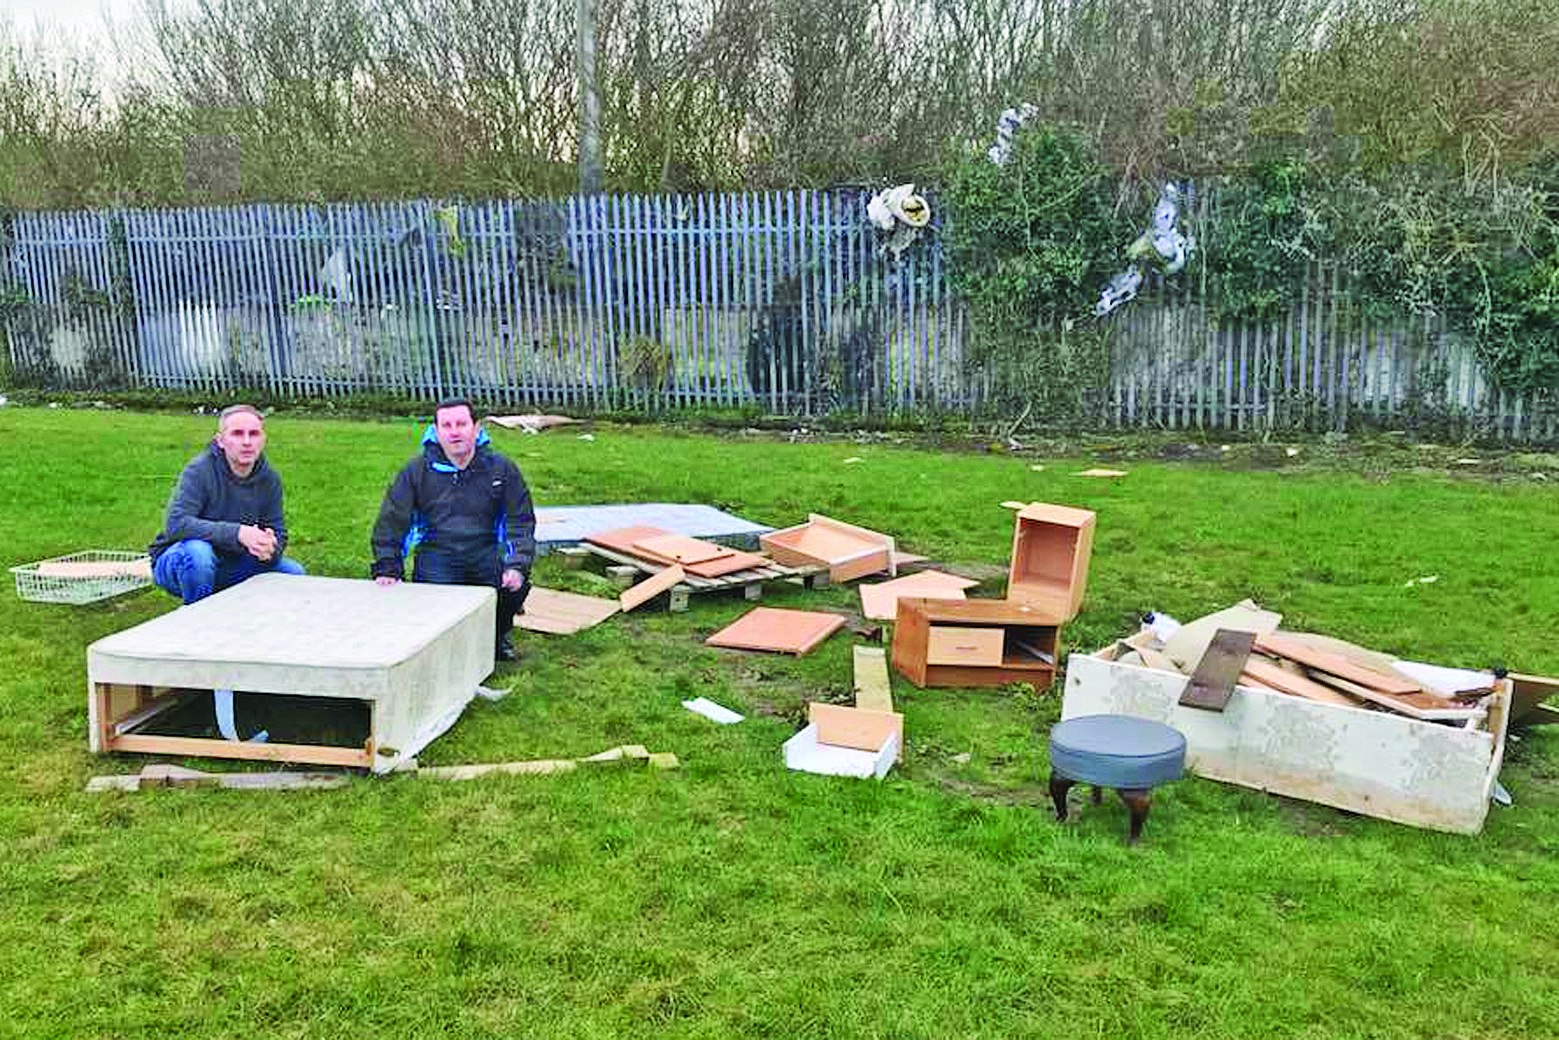 Fly-tippers dump entire bedroom